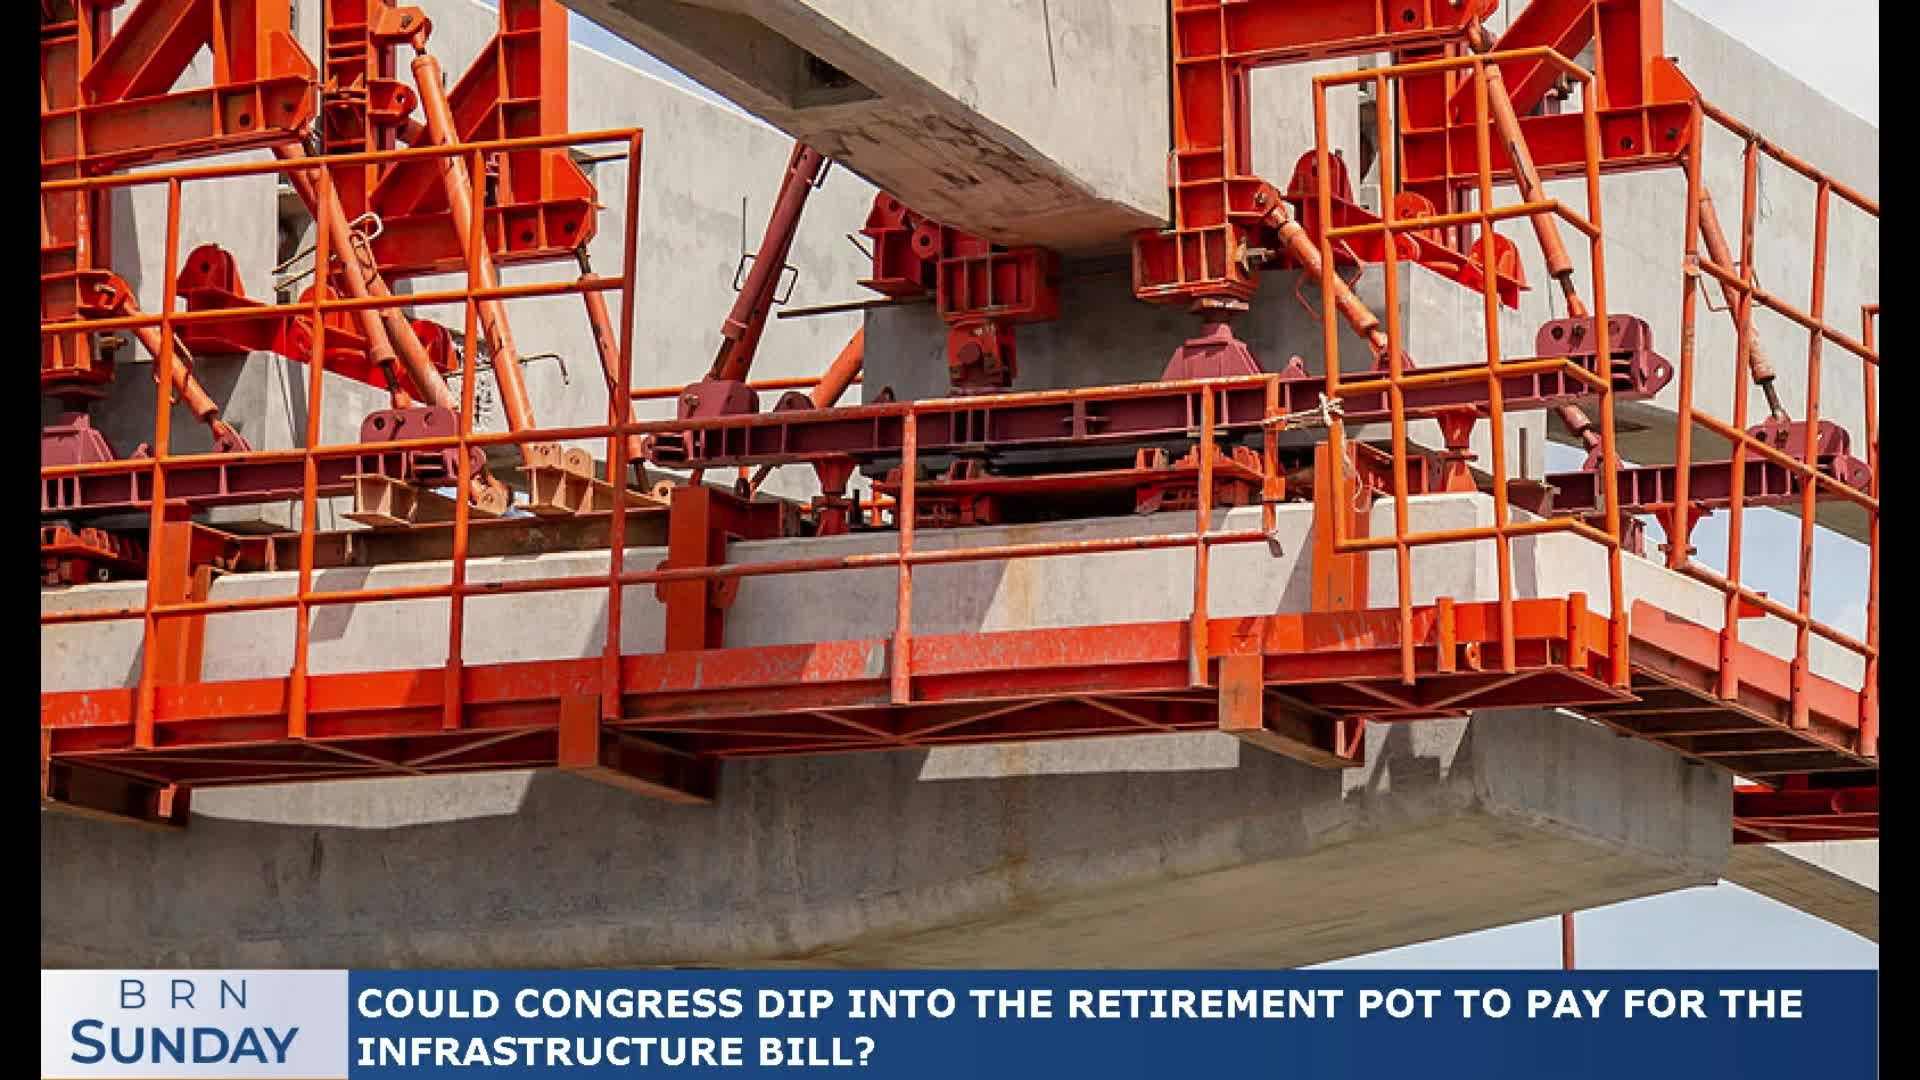 BRN Sunday   Could Congress dip into the retirement pot to pay for the infrastructure bill?